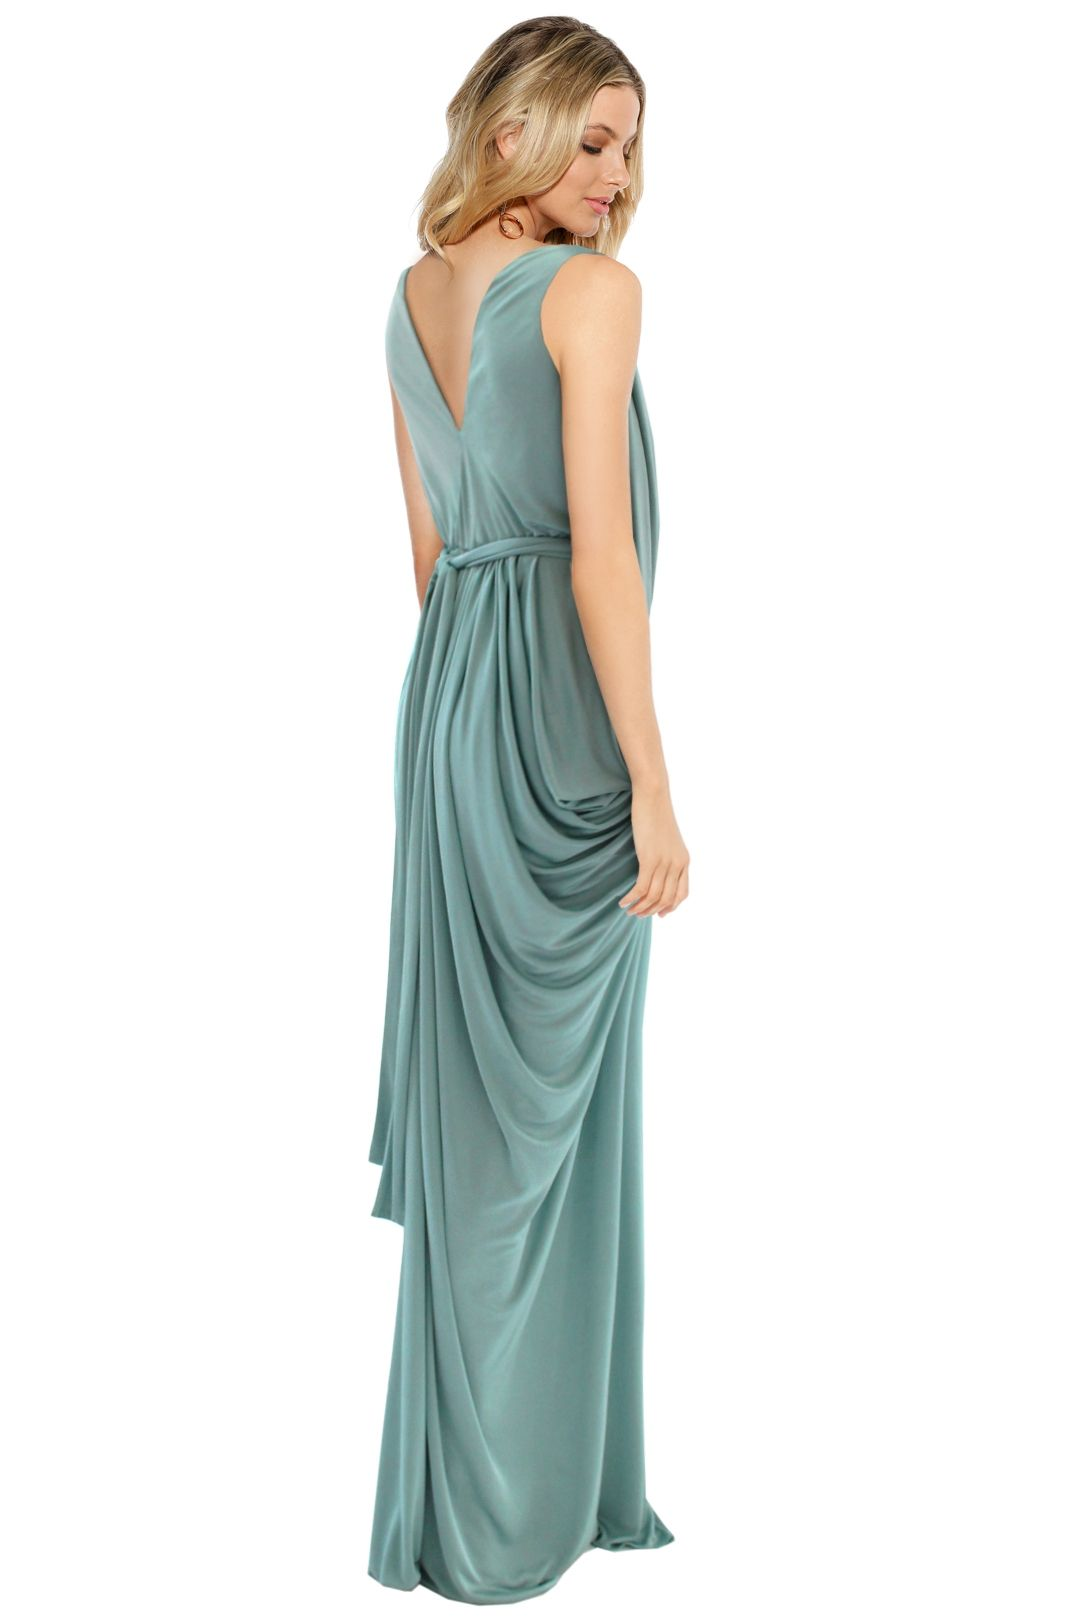 Sheike - Grecian Maxi Dress - Mint - Back